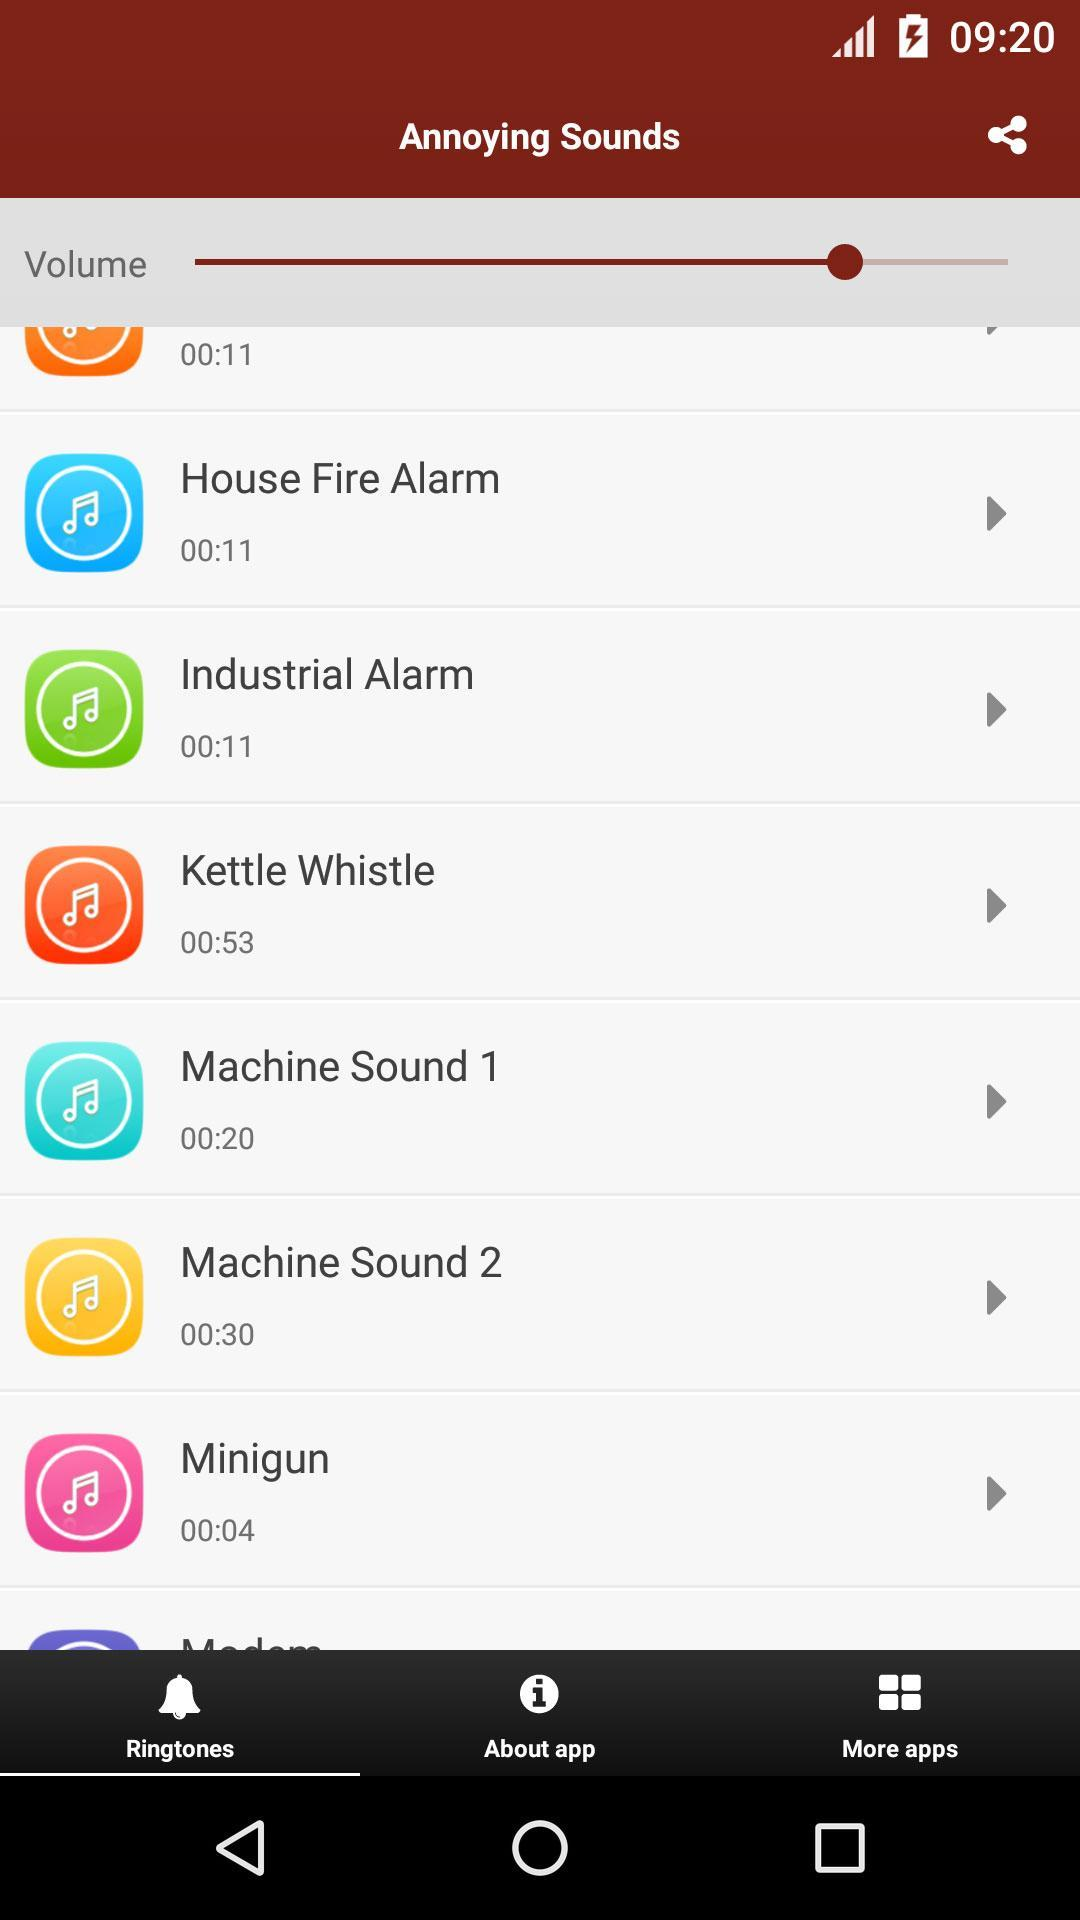 Annoying Sounds for Android - APK Download